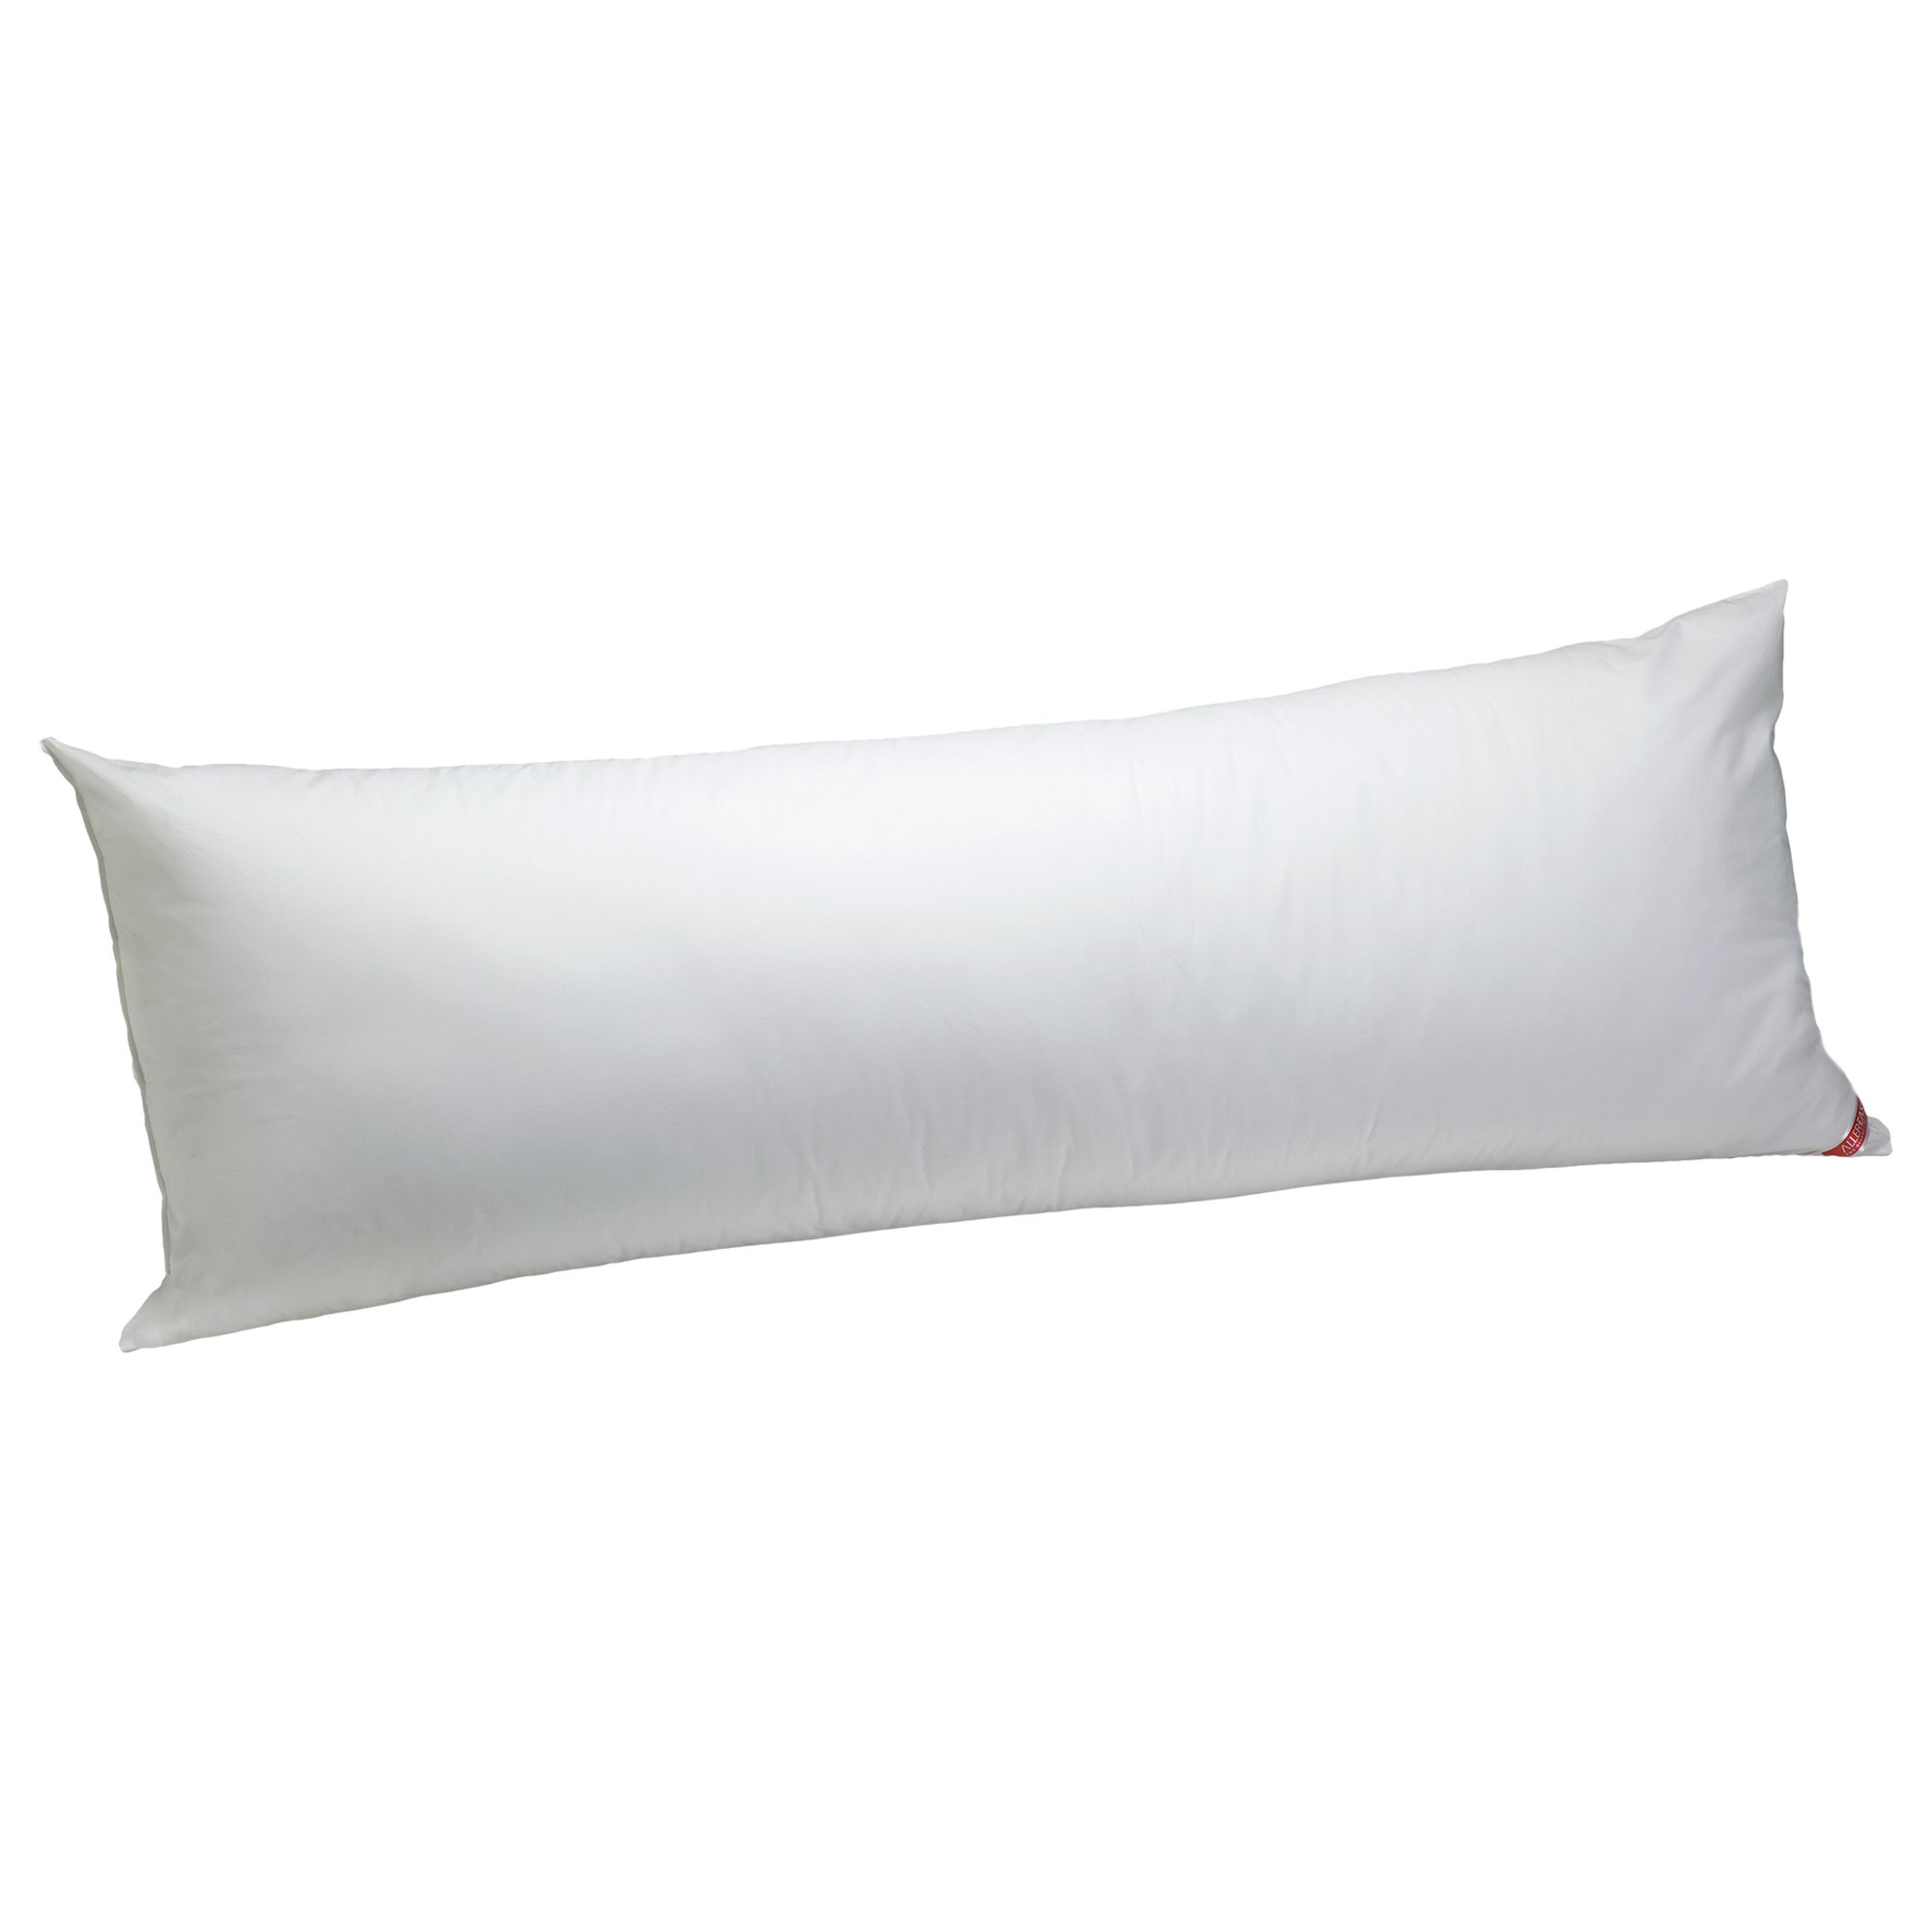 Aller-Ease Cotton Hypoallergenic Allergy Protection Body Pillow, 20'' x 54''